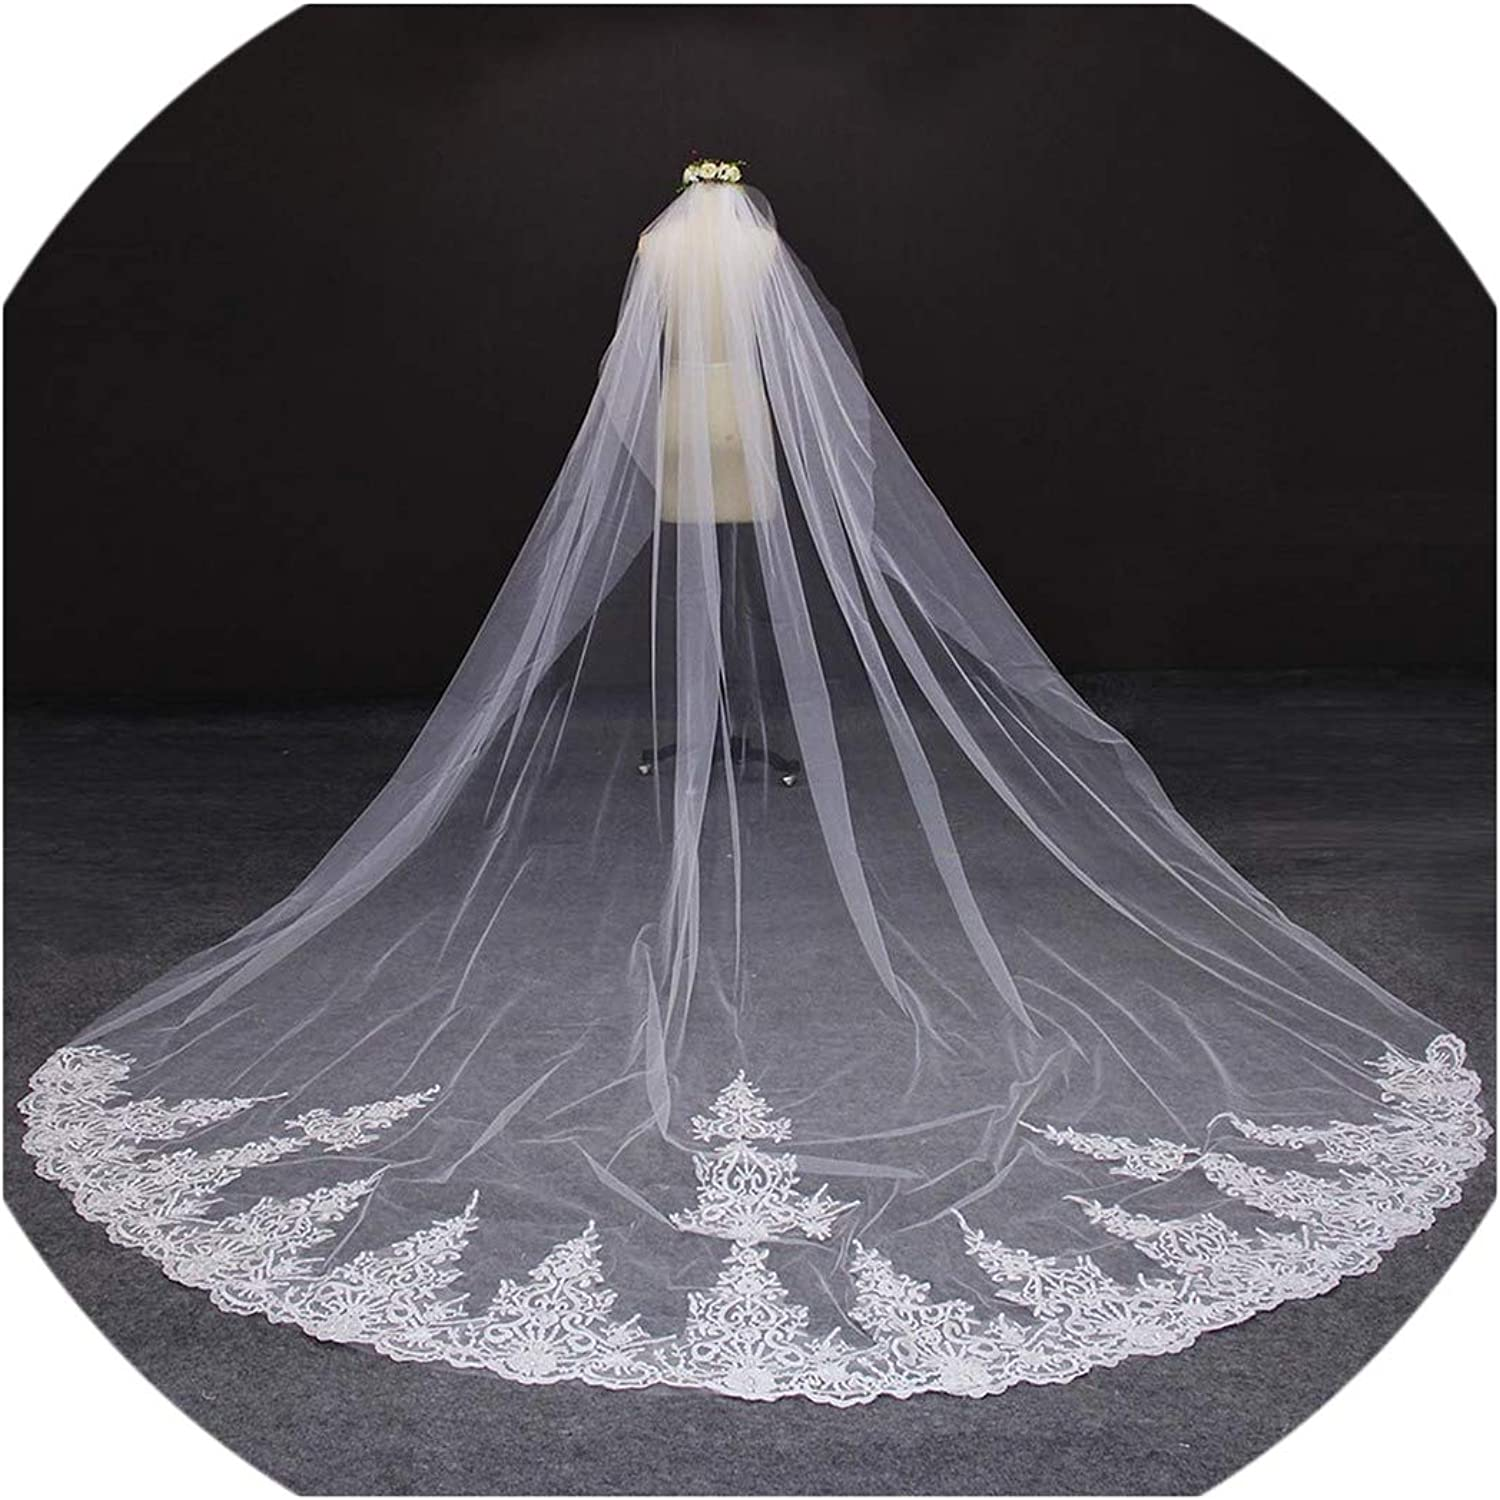 4 Meter White Ivory One Layer Beautiful Cathedral Length Lace Edge Wedding Veil With Comb Long Bridal Veil Voile Mariage 2019,Ivory